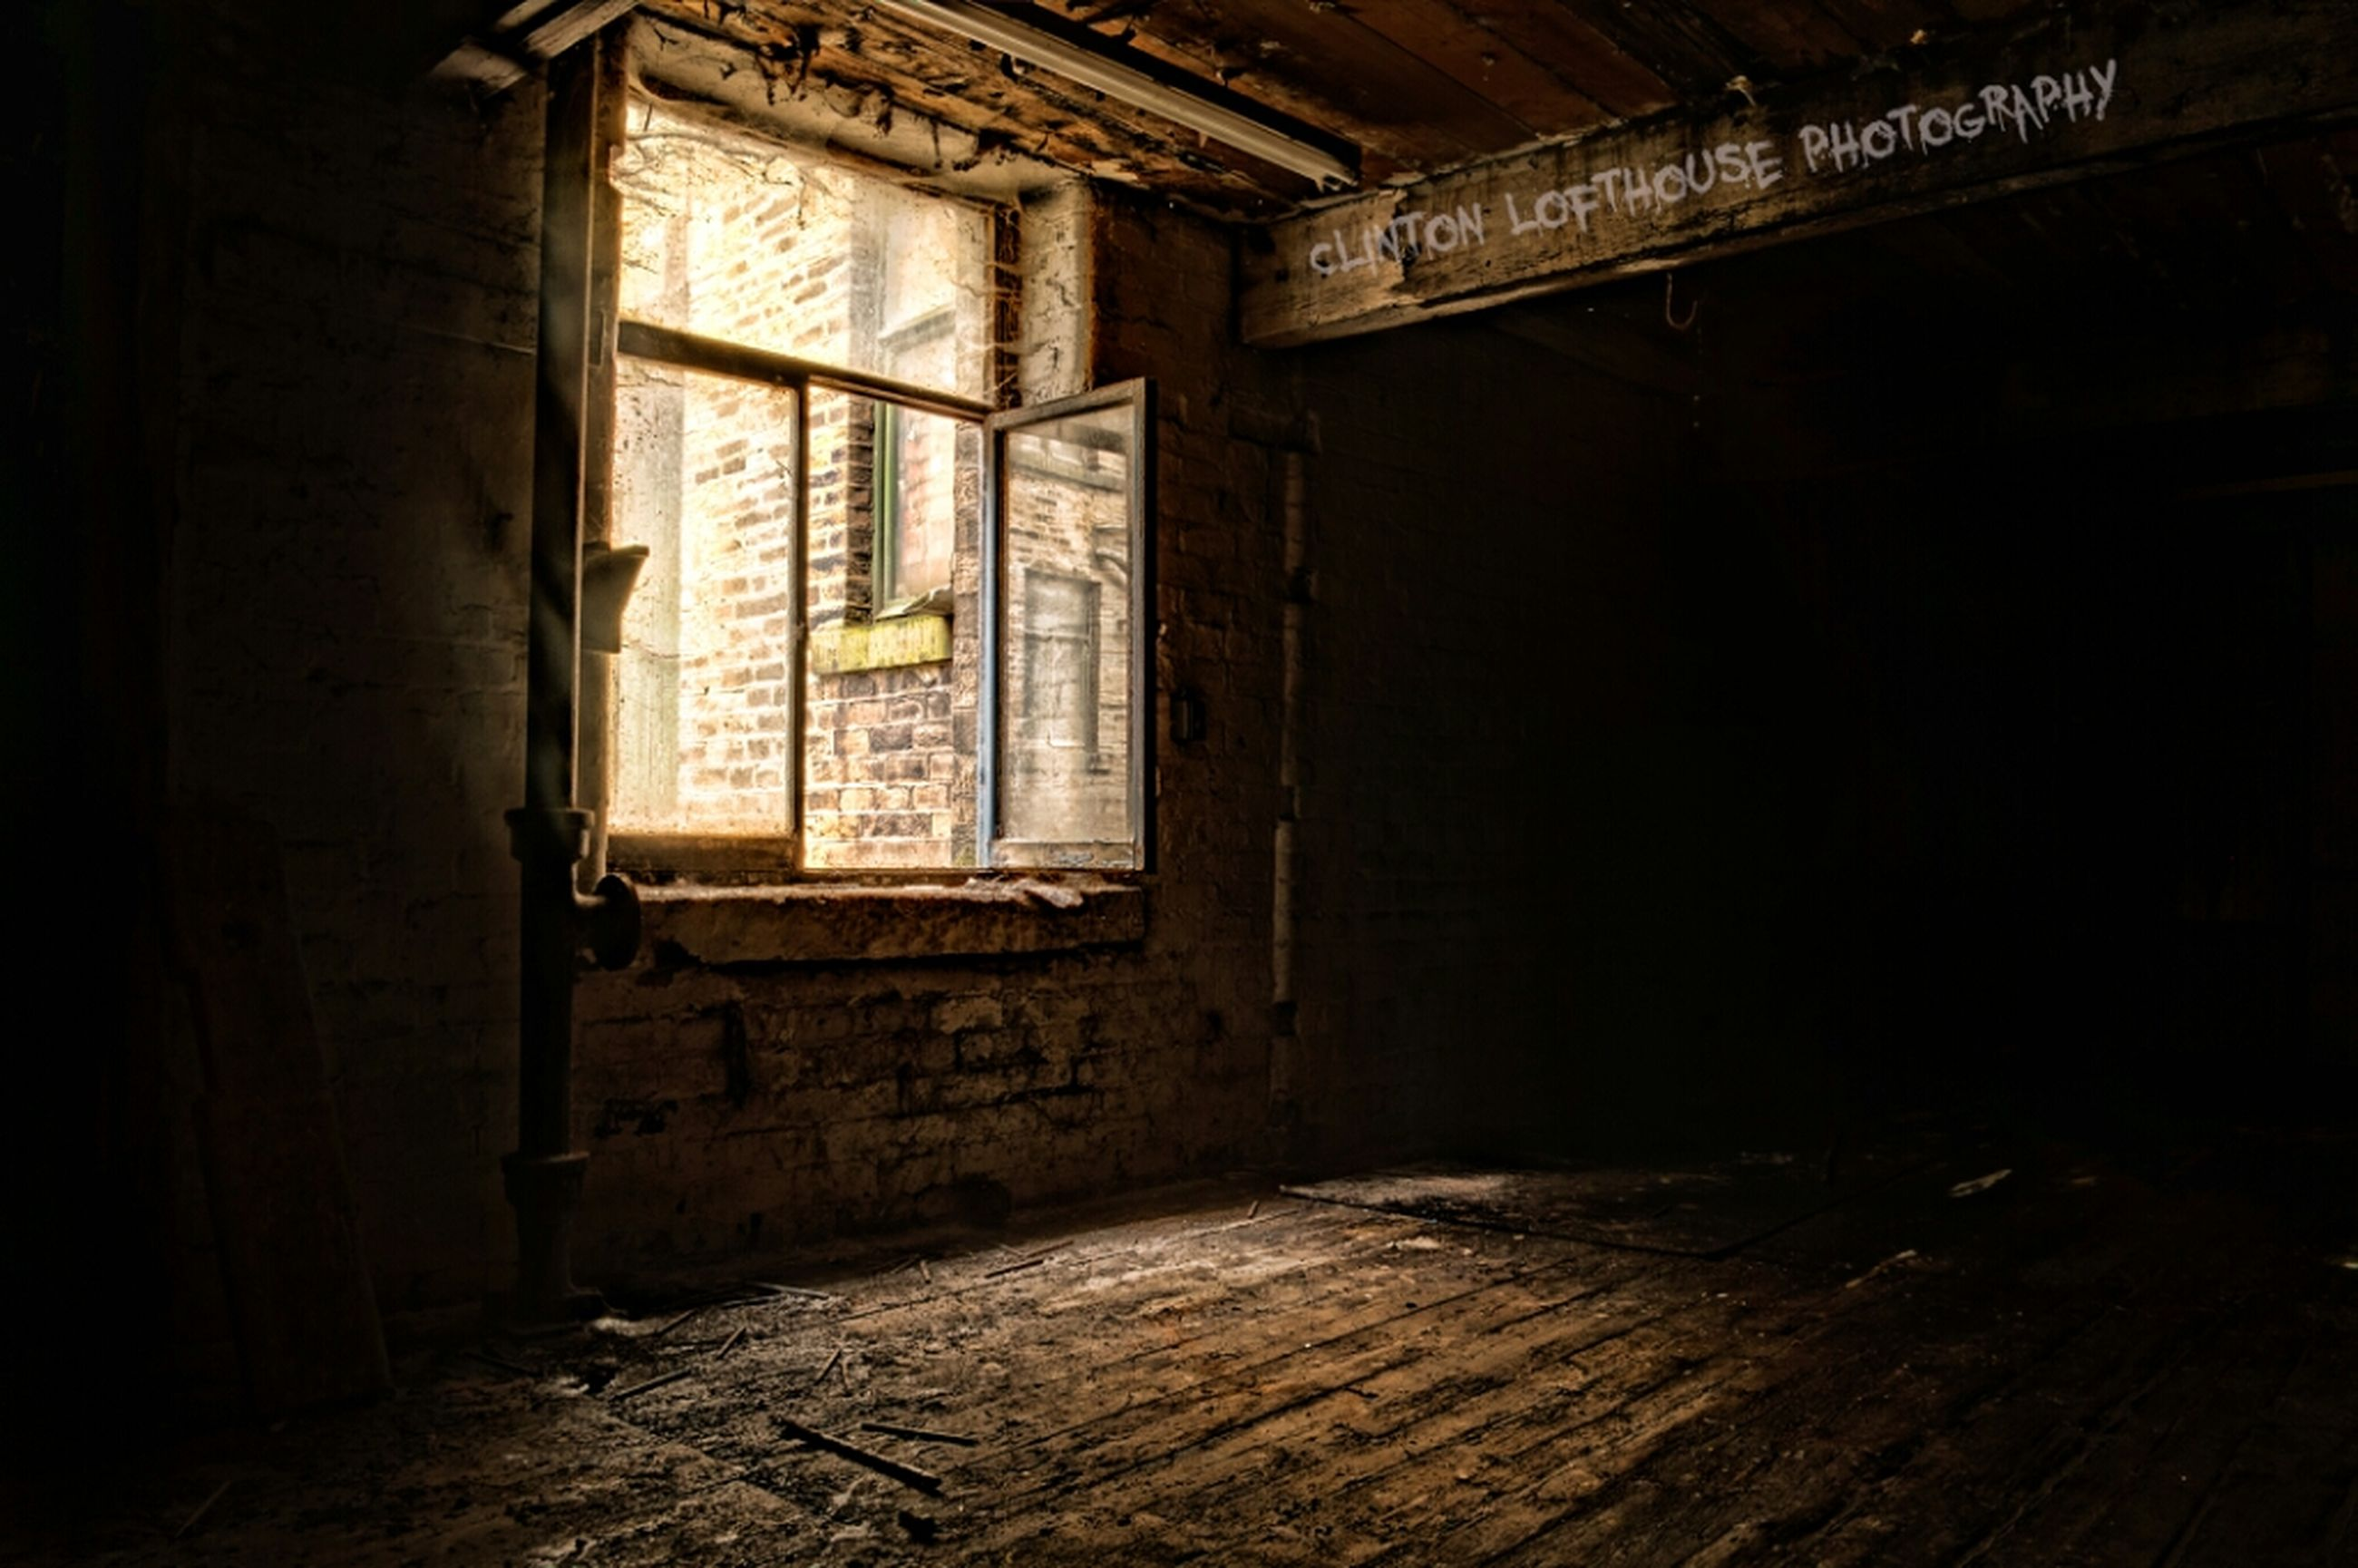 indoors, abandoned, obsolete, old, damaged, architecture, deterioration, run-down, built structure, interior, house, window, door, bad condition, weathered, home interior, room, empty, wood - material, messy